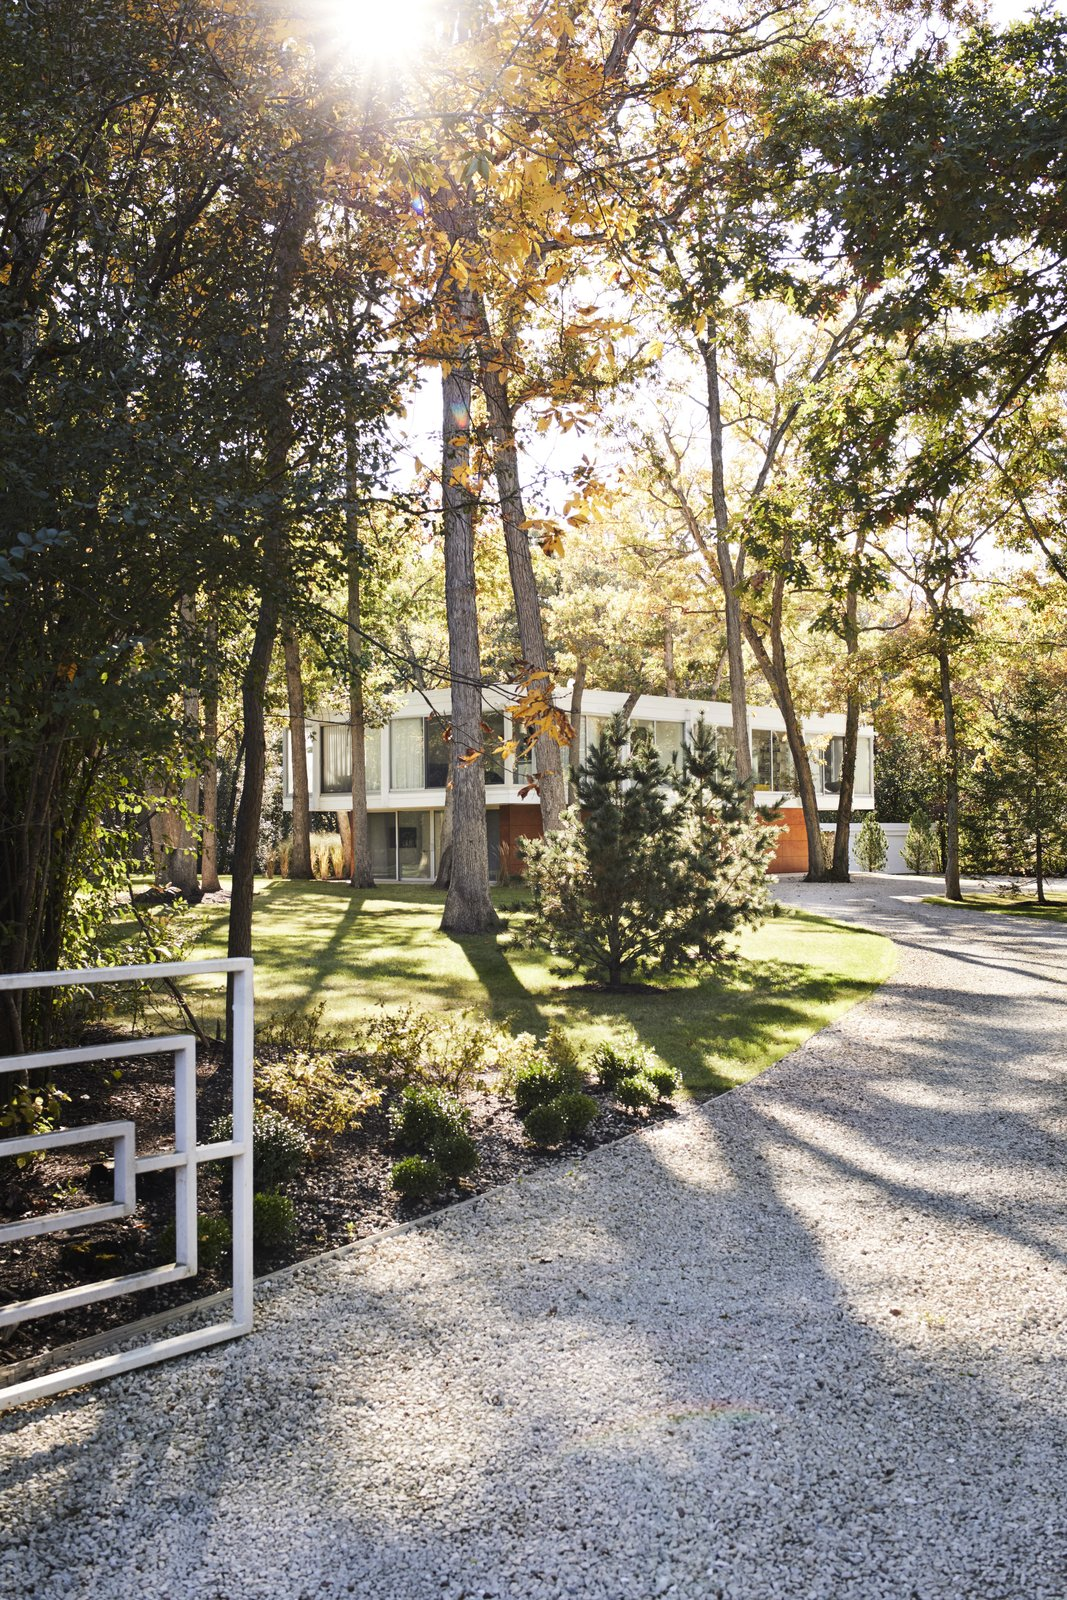 Taking an active role in the restoration of a midcentury house she and her husband bought near Chicago in 2013, Eva Kowalow honored the vision of the home's architect and previous owner, Jack Viks, while updating the structure to fit her style and the needs of her family. The entrance gate, designed by Viks, is original.